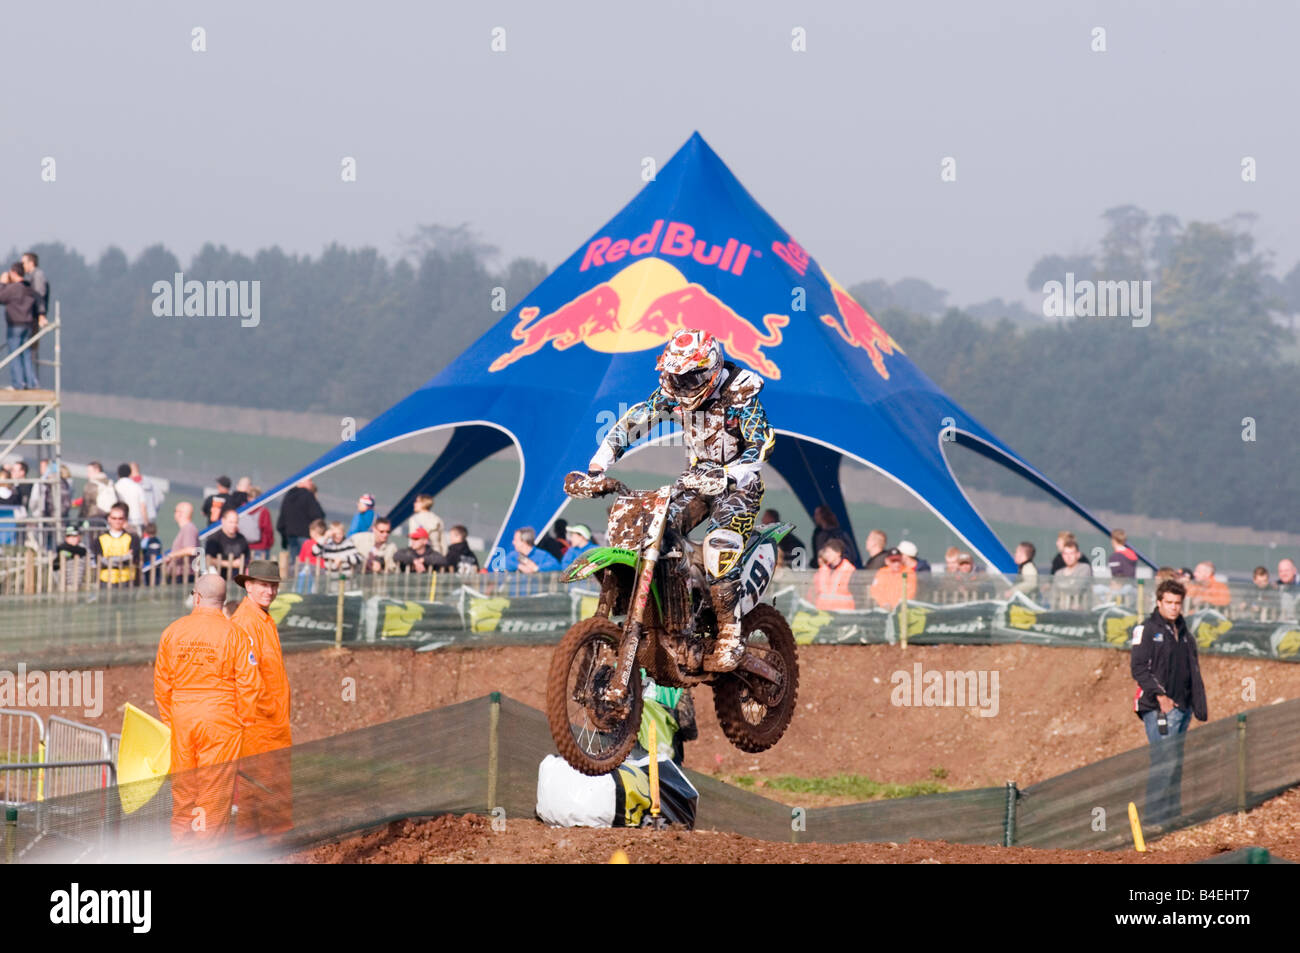 Red Bull Events >> Red Bull Event Stock Photos Red Bull Event Stock Images Alamy